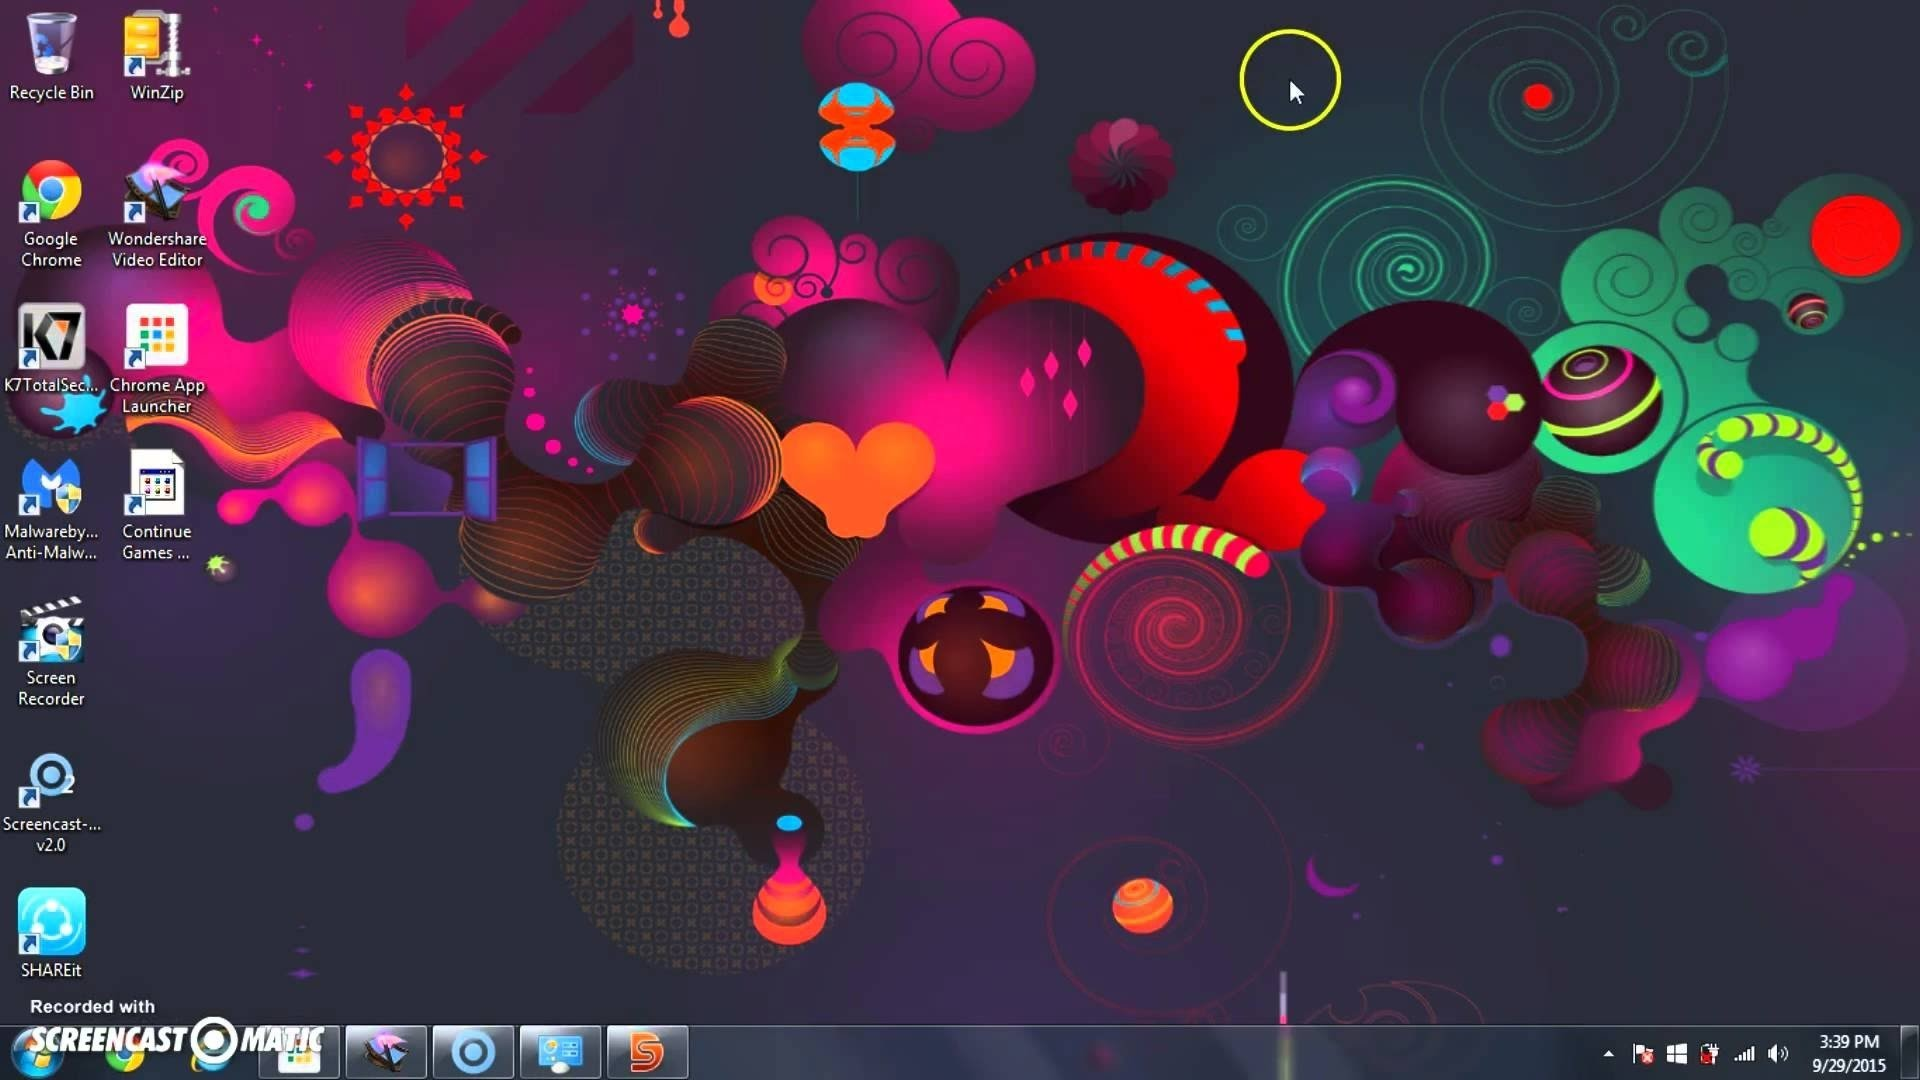 1920x1080  How to Make animated desktop wallpapers in windows 7,8,8.1 ,10